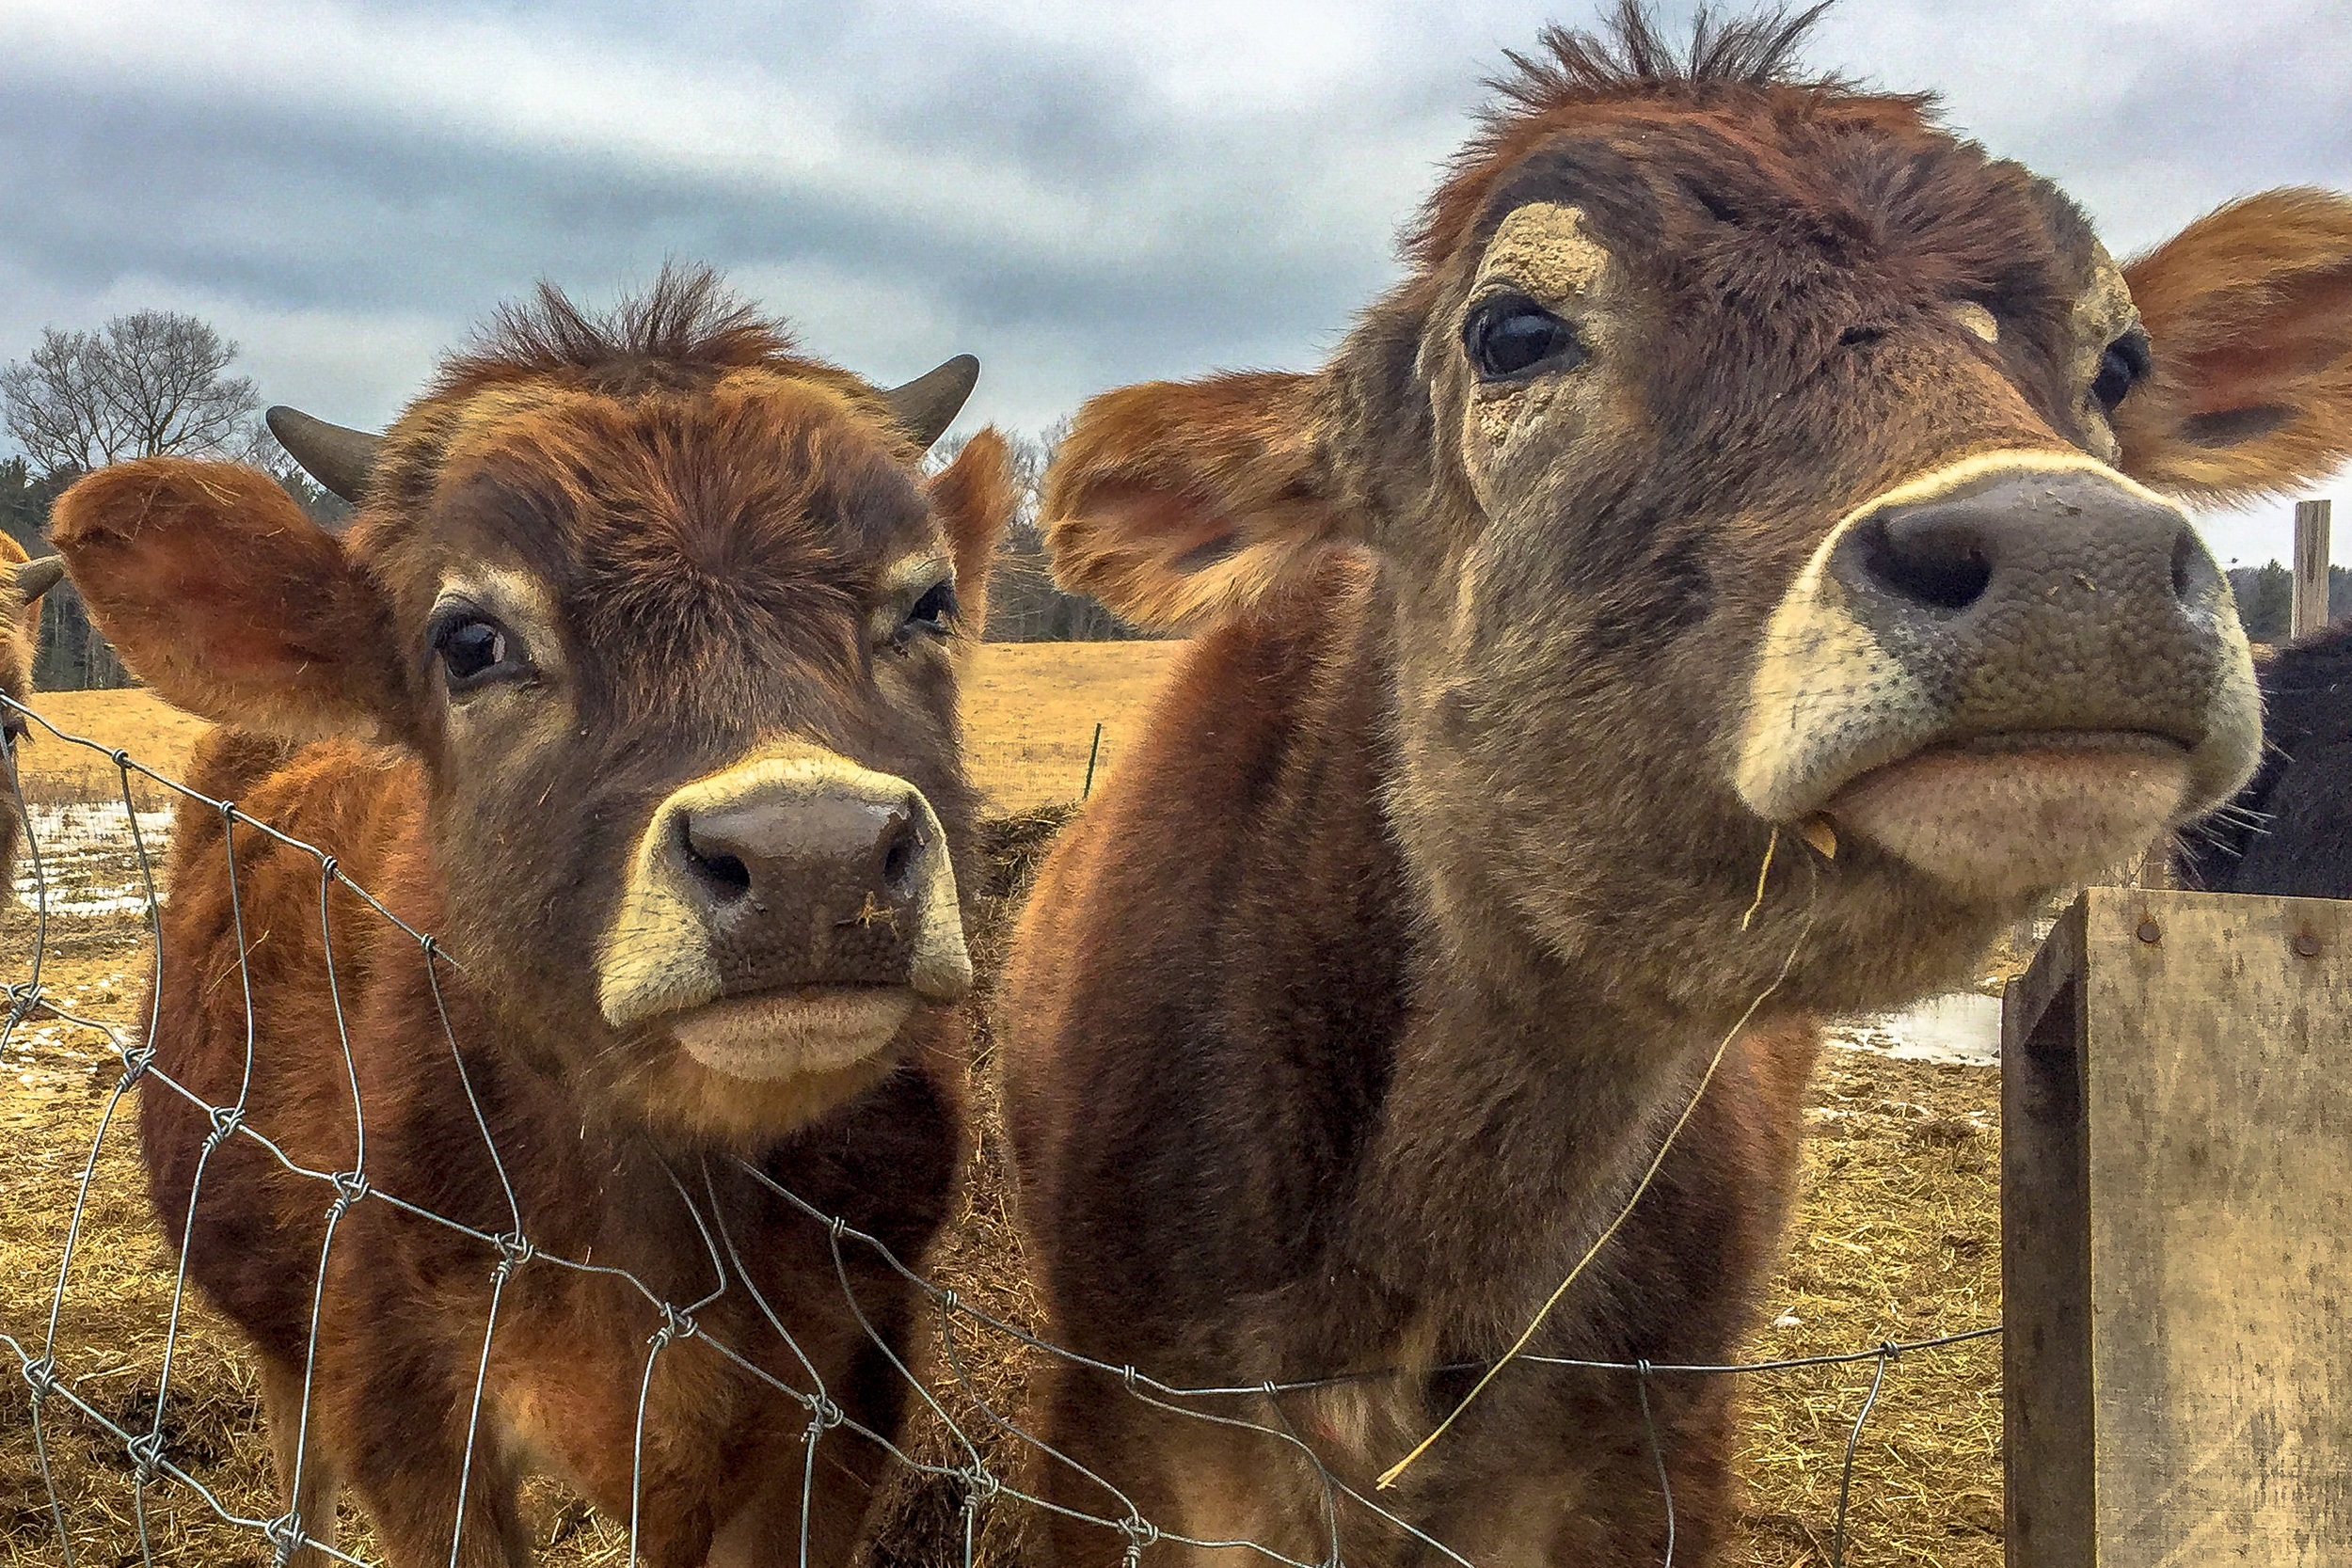 I could not resist taking photographs of these two cows at one of my friends farm as they walked over for a visit…..